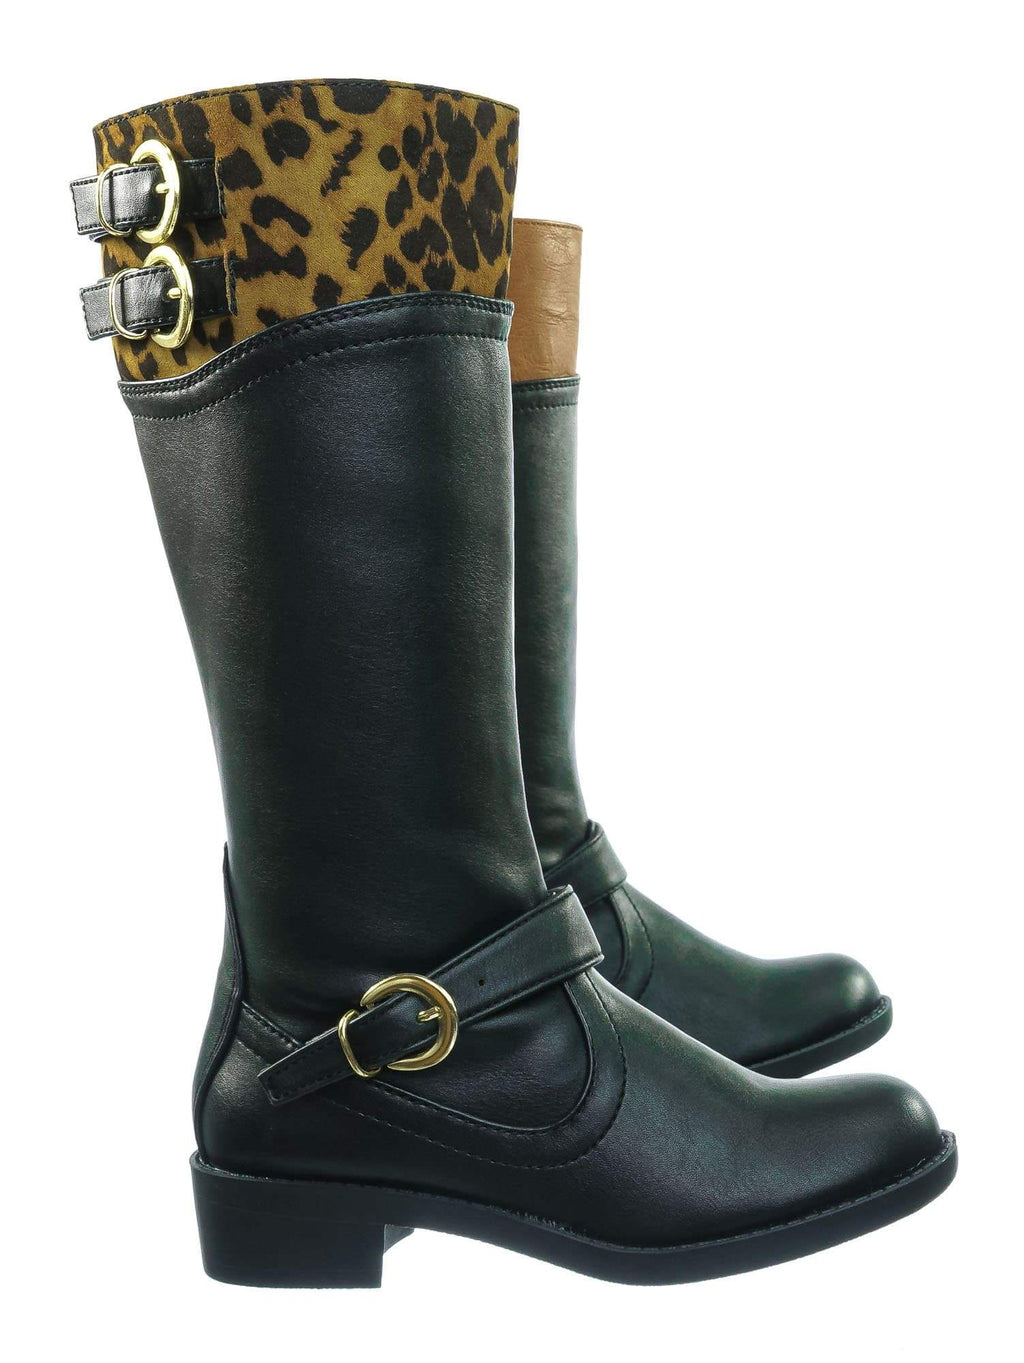 GolfIIS Childrens Equestrian Riding Boot - Girl Kid Belted  Moto Western 2 Tone